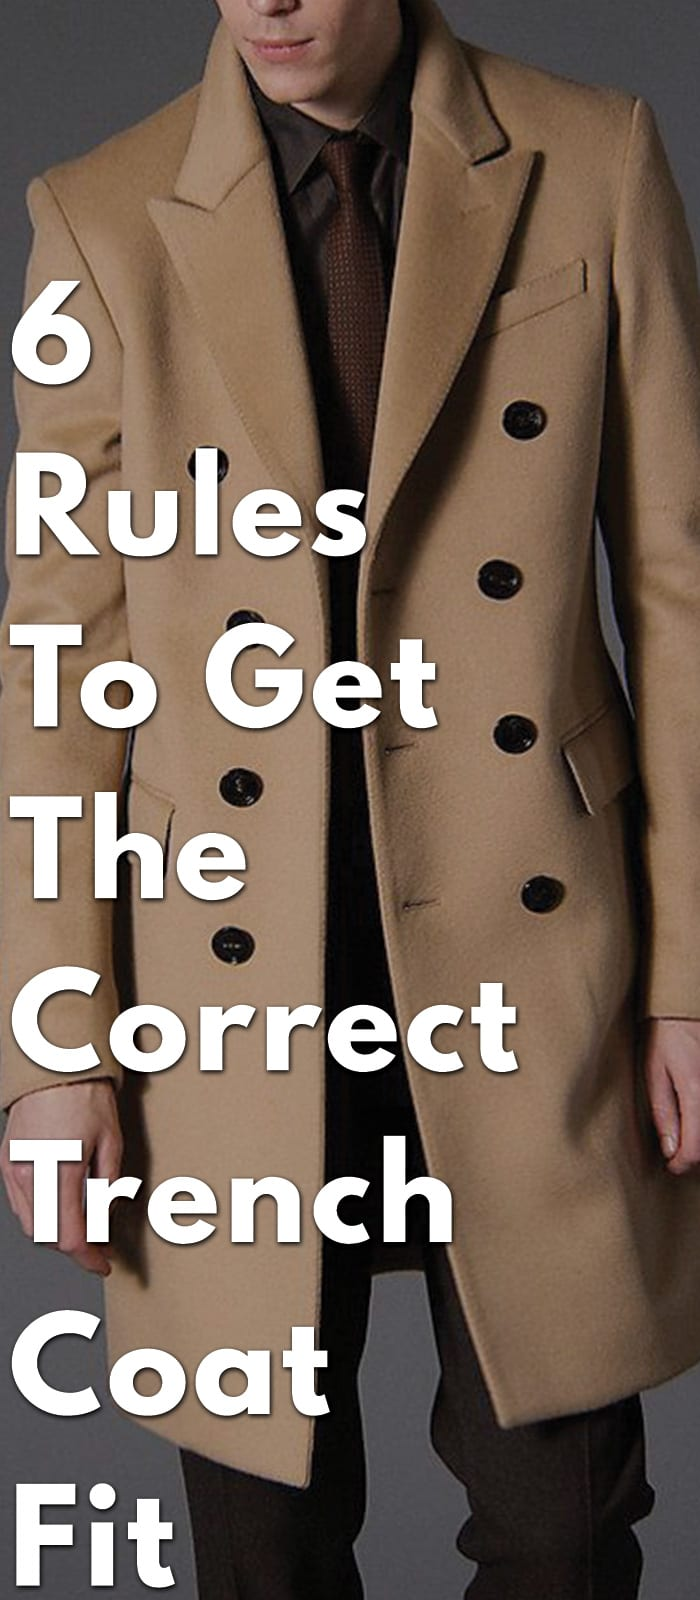 6-Rules-To-Get-The-Correct-Trench-Coat-Fit